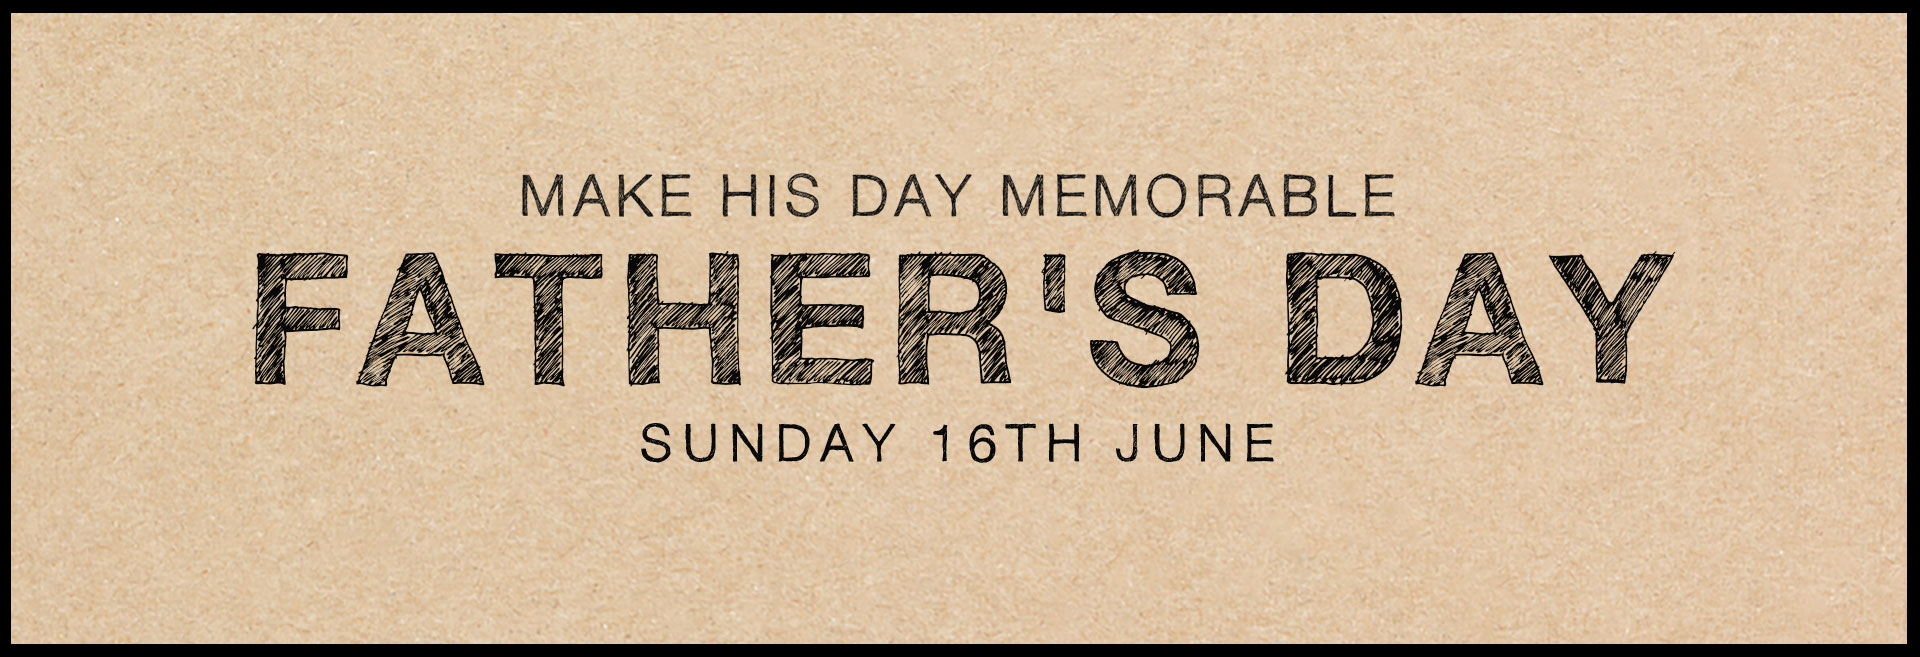 Father's Day at The Falcon